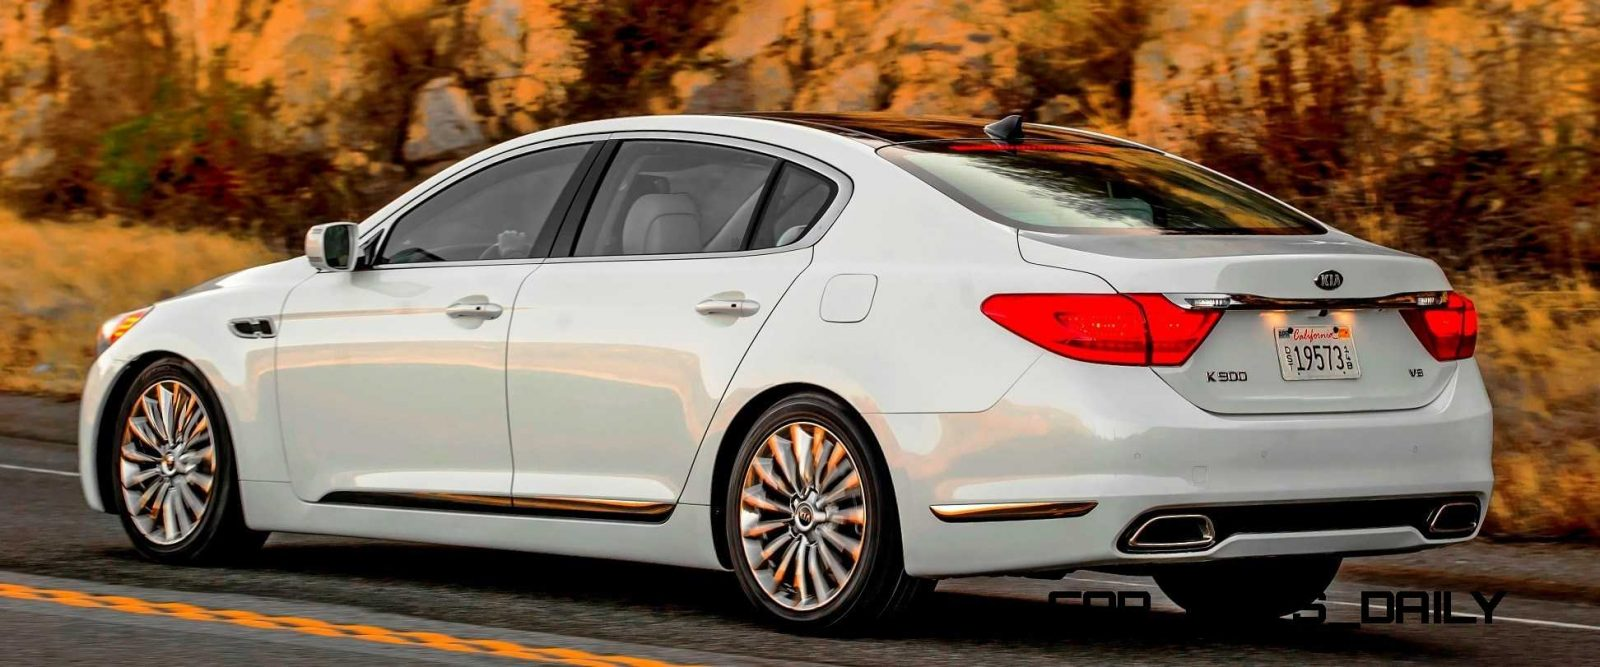 2015 K900 Kia New RWD Flagship 12